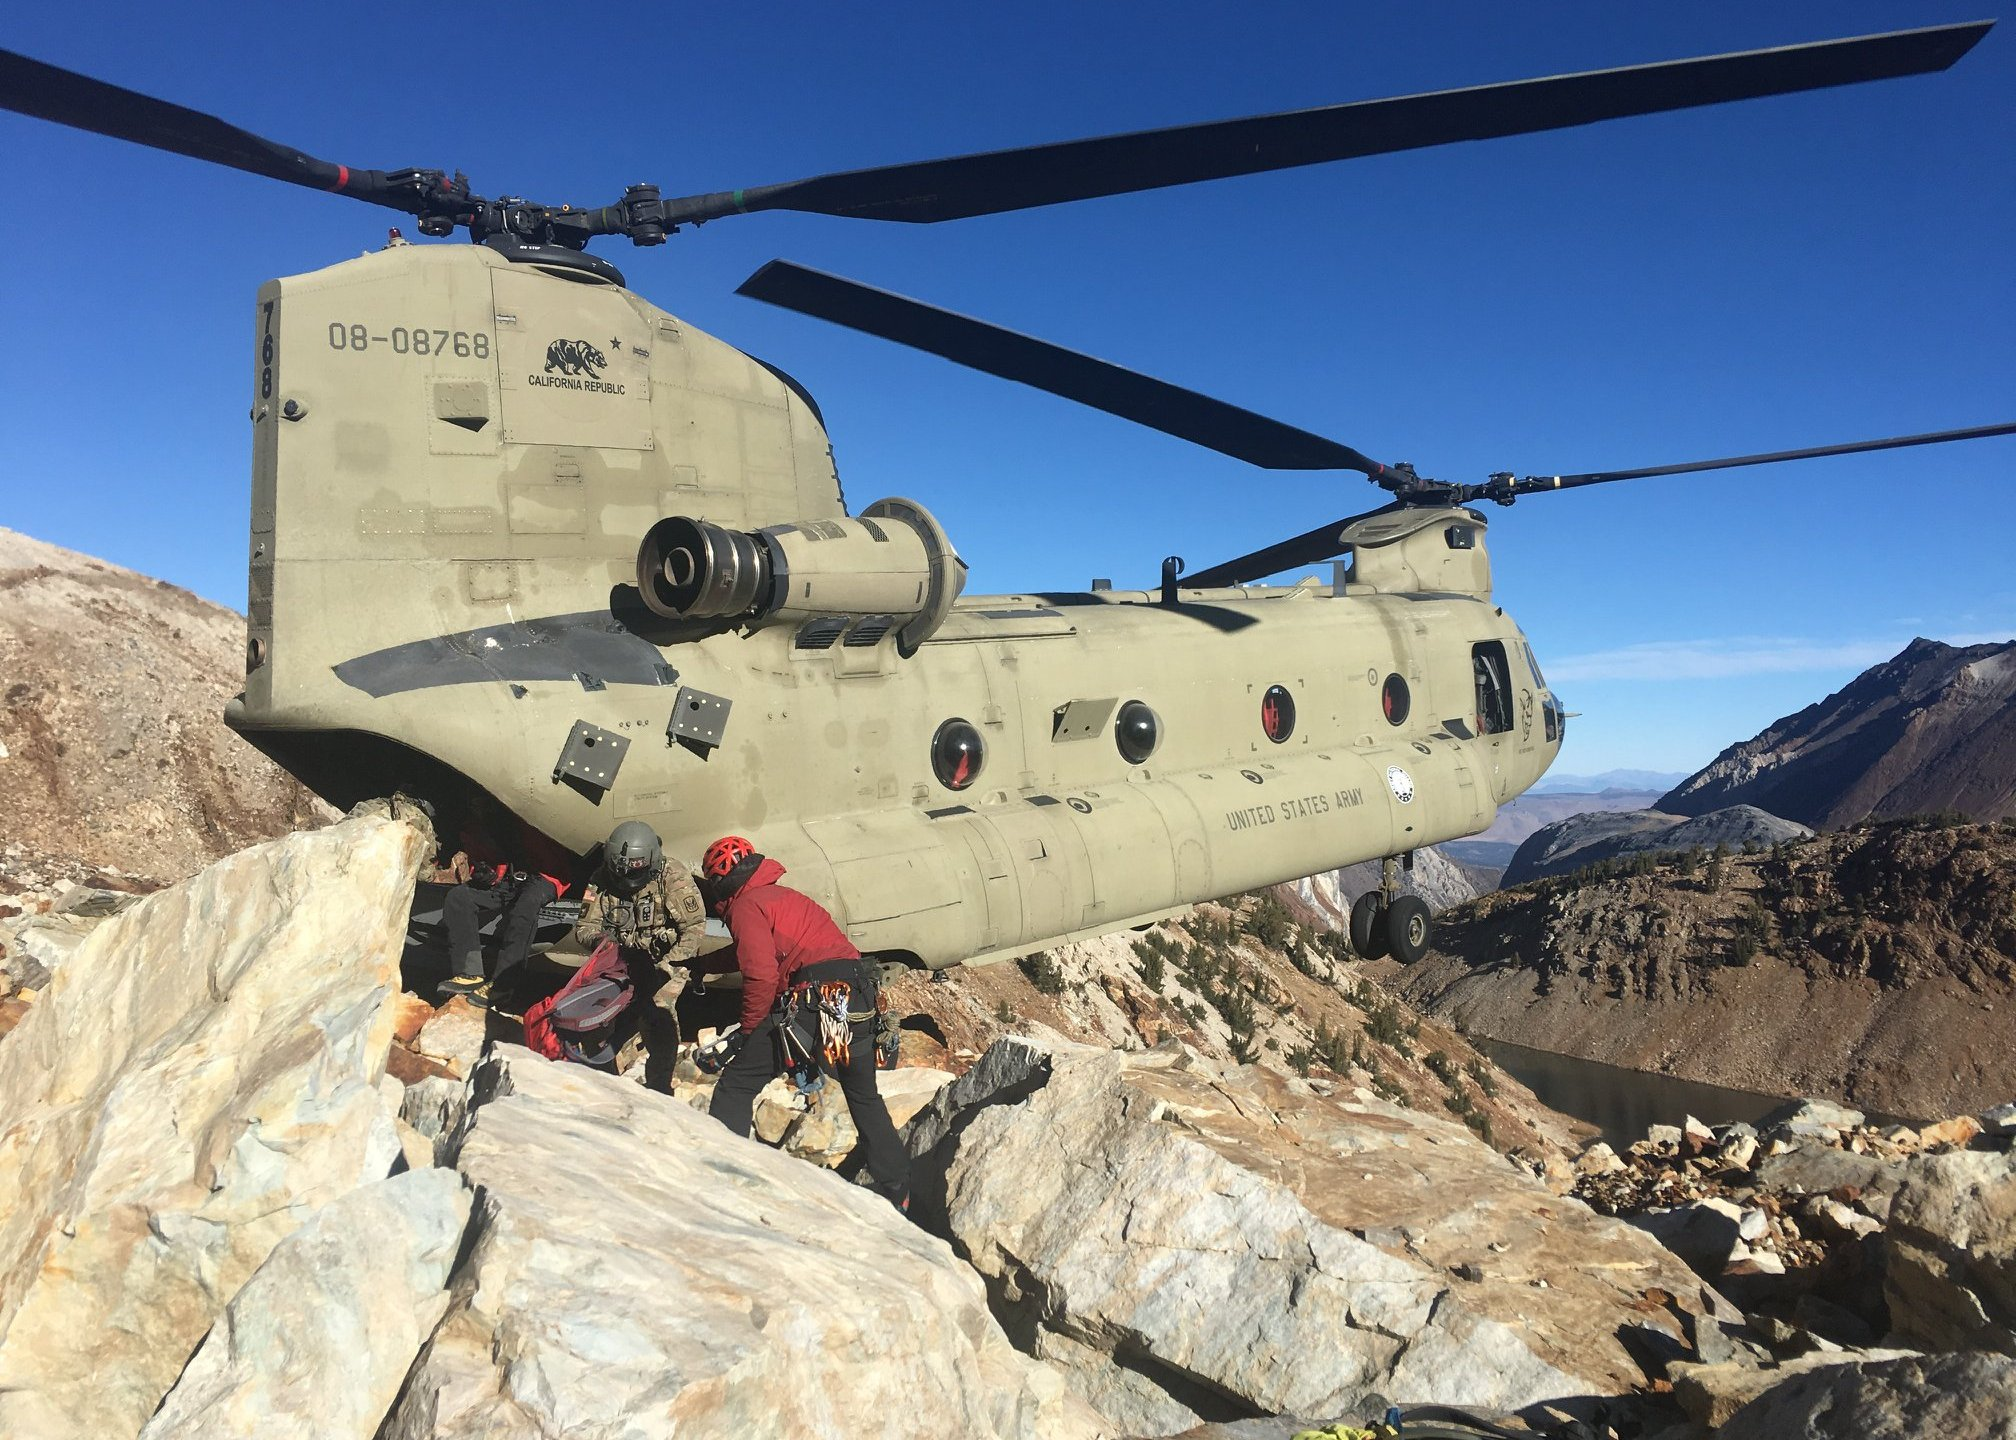 Rescuers are seen during an operation to recover the bodies of two women who died while hiking in the eastern Sierra Nevada on Oct. 29, 2019. (Credit: Mono County Sheriff's Office)